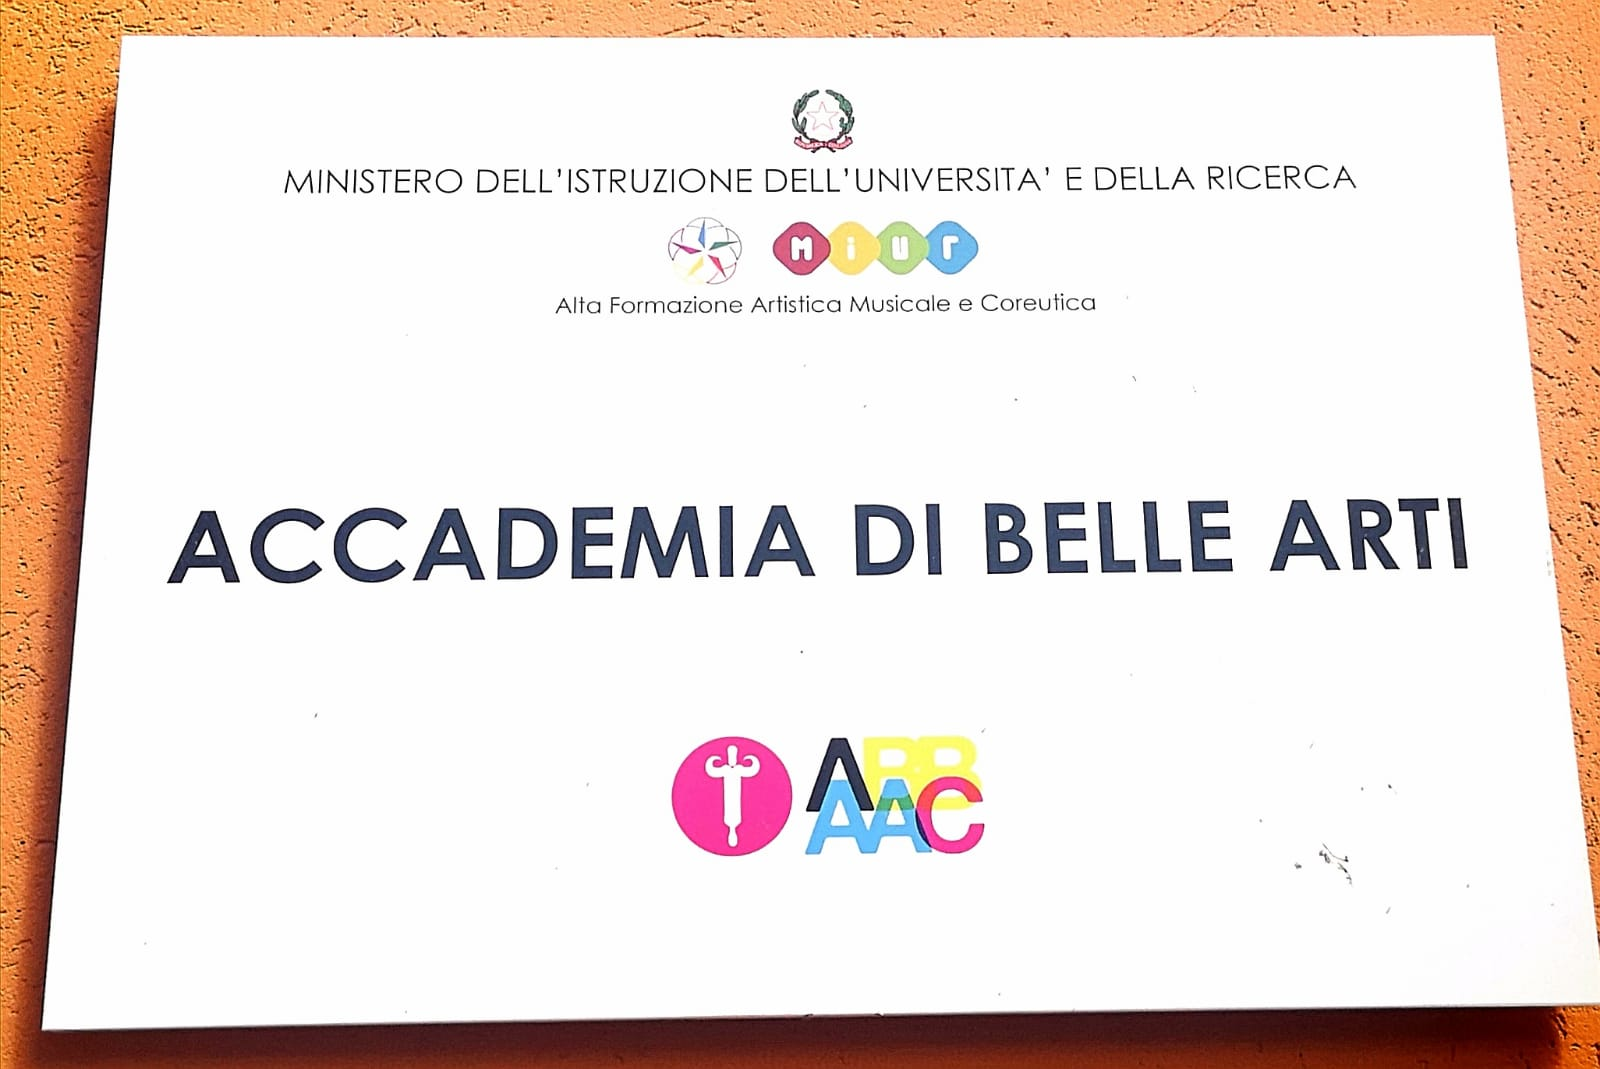 colorful sign of the Academy of Fine Arts of Catanzaro